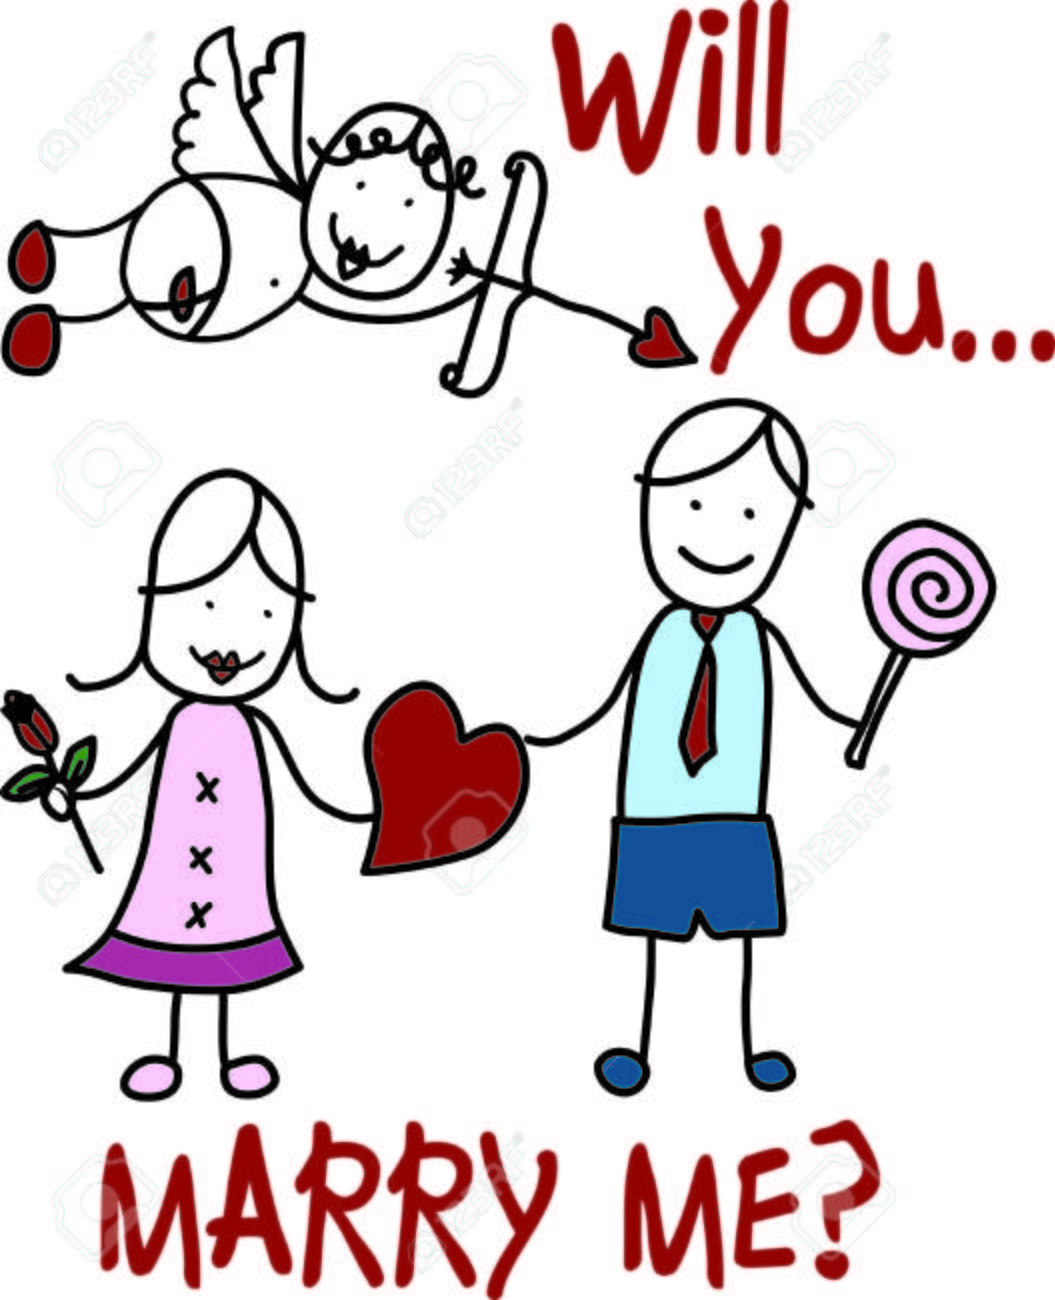 1055x1300 We Are In Love With This Cute Cupid The Simple Line Drawing Brings